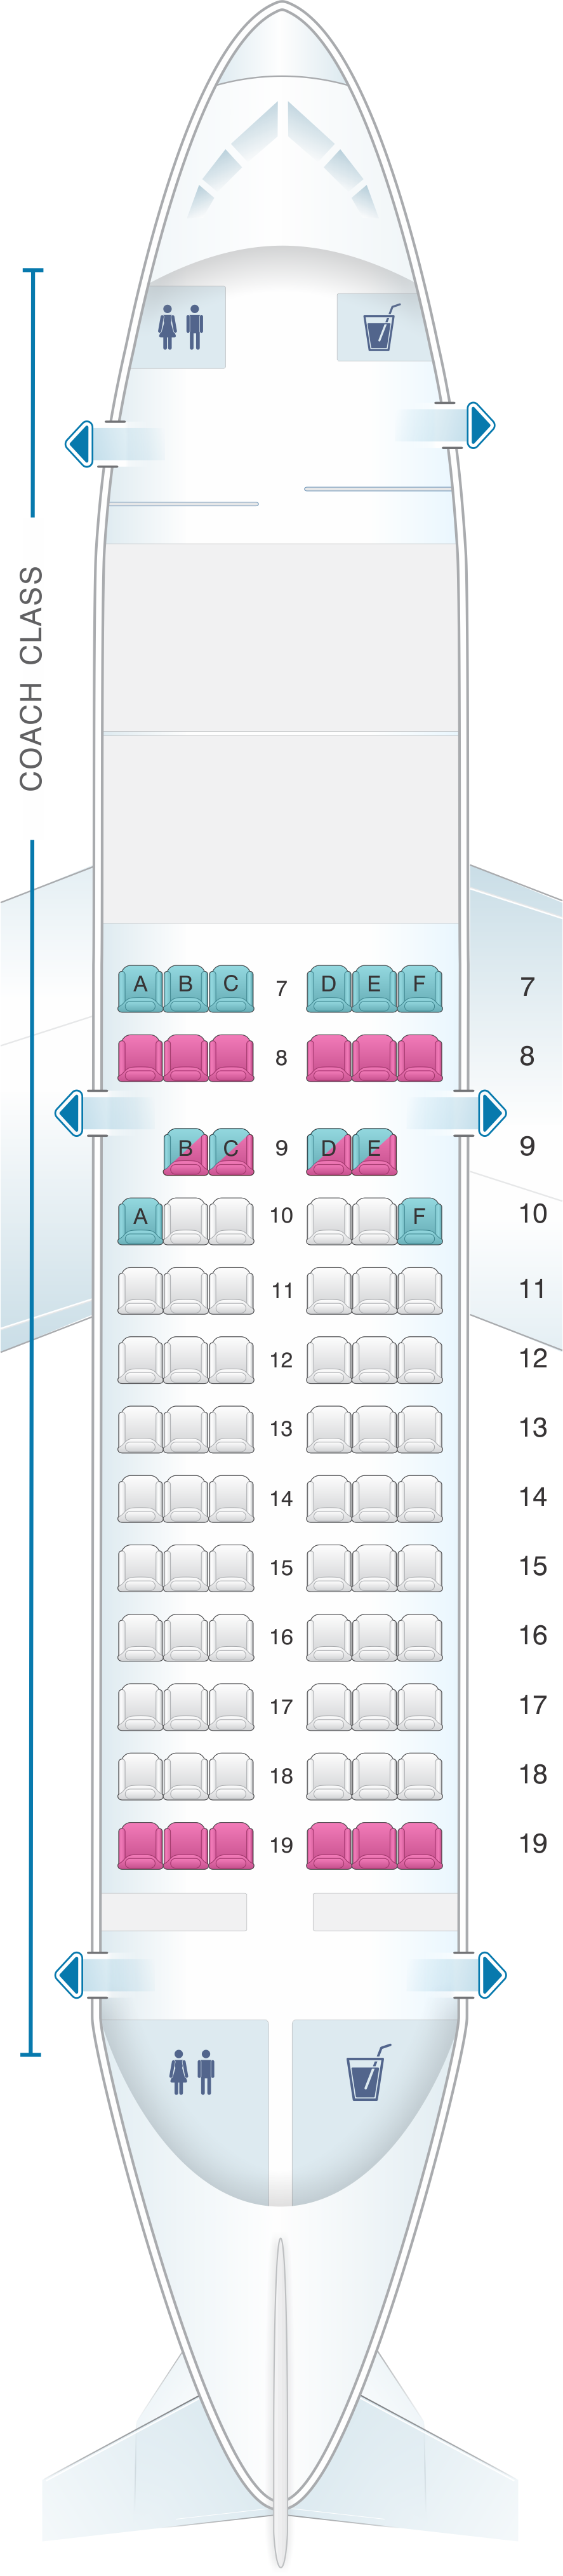 Seat map for Air Inuit Boeing B737 200C 76pax Combi